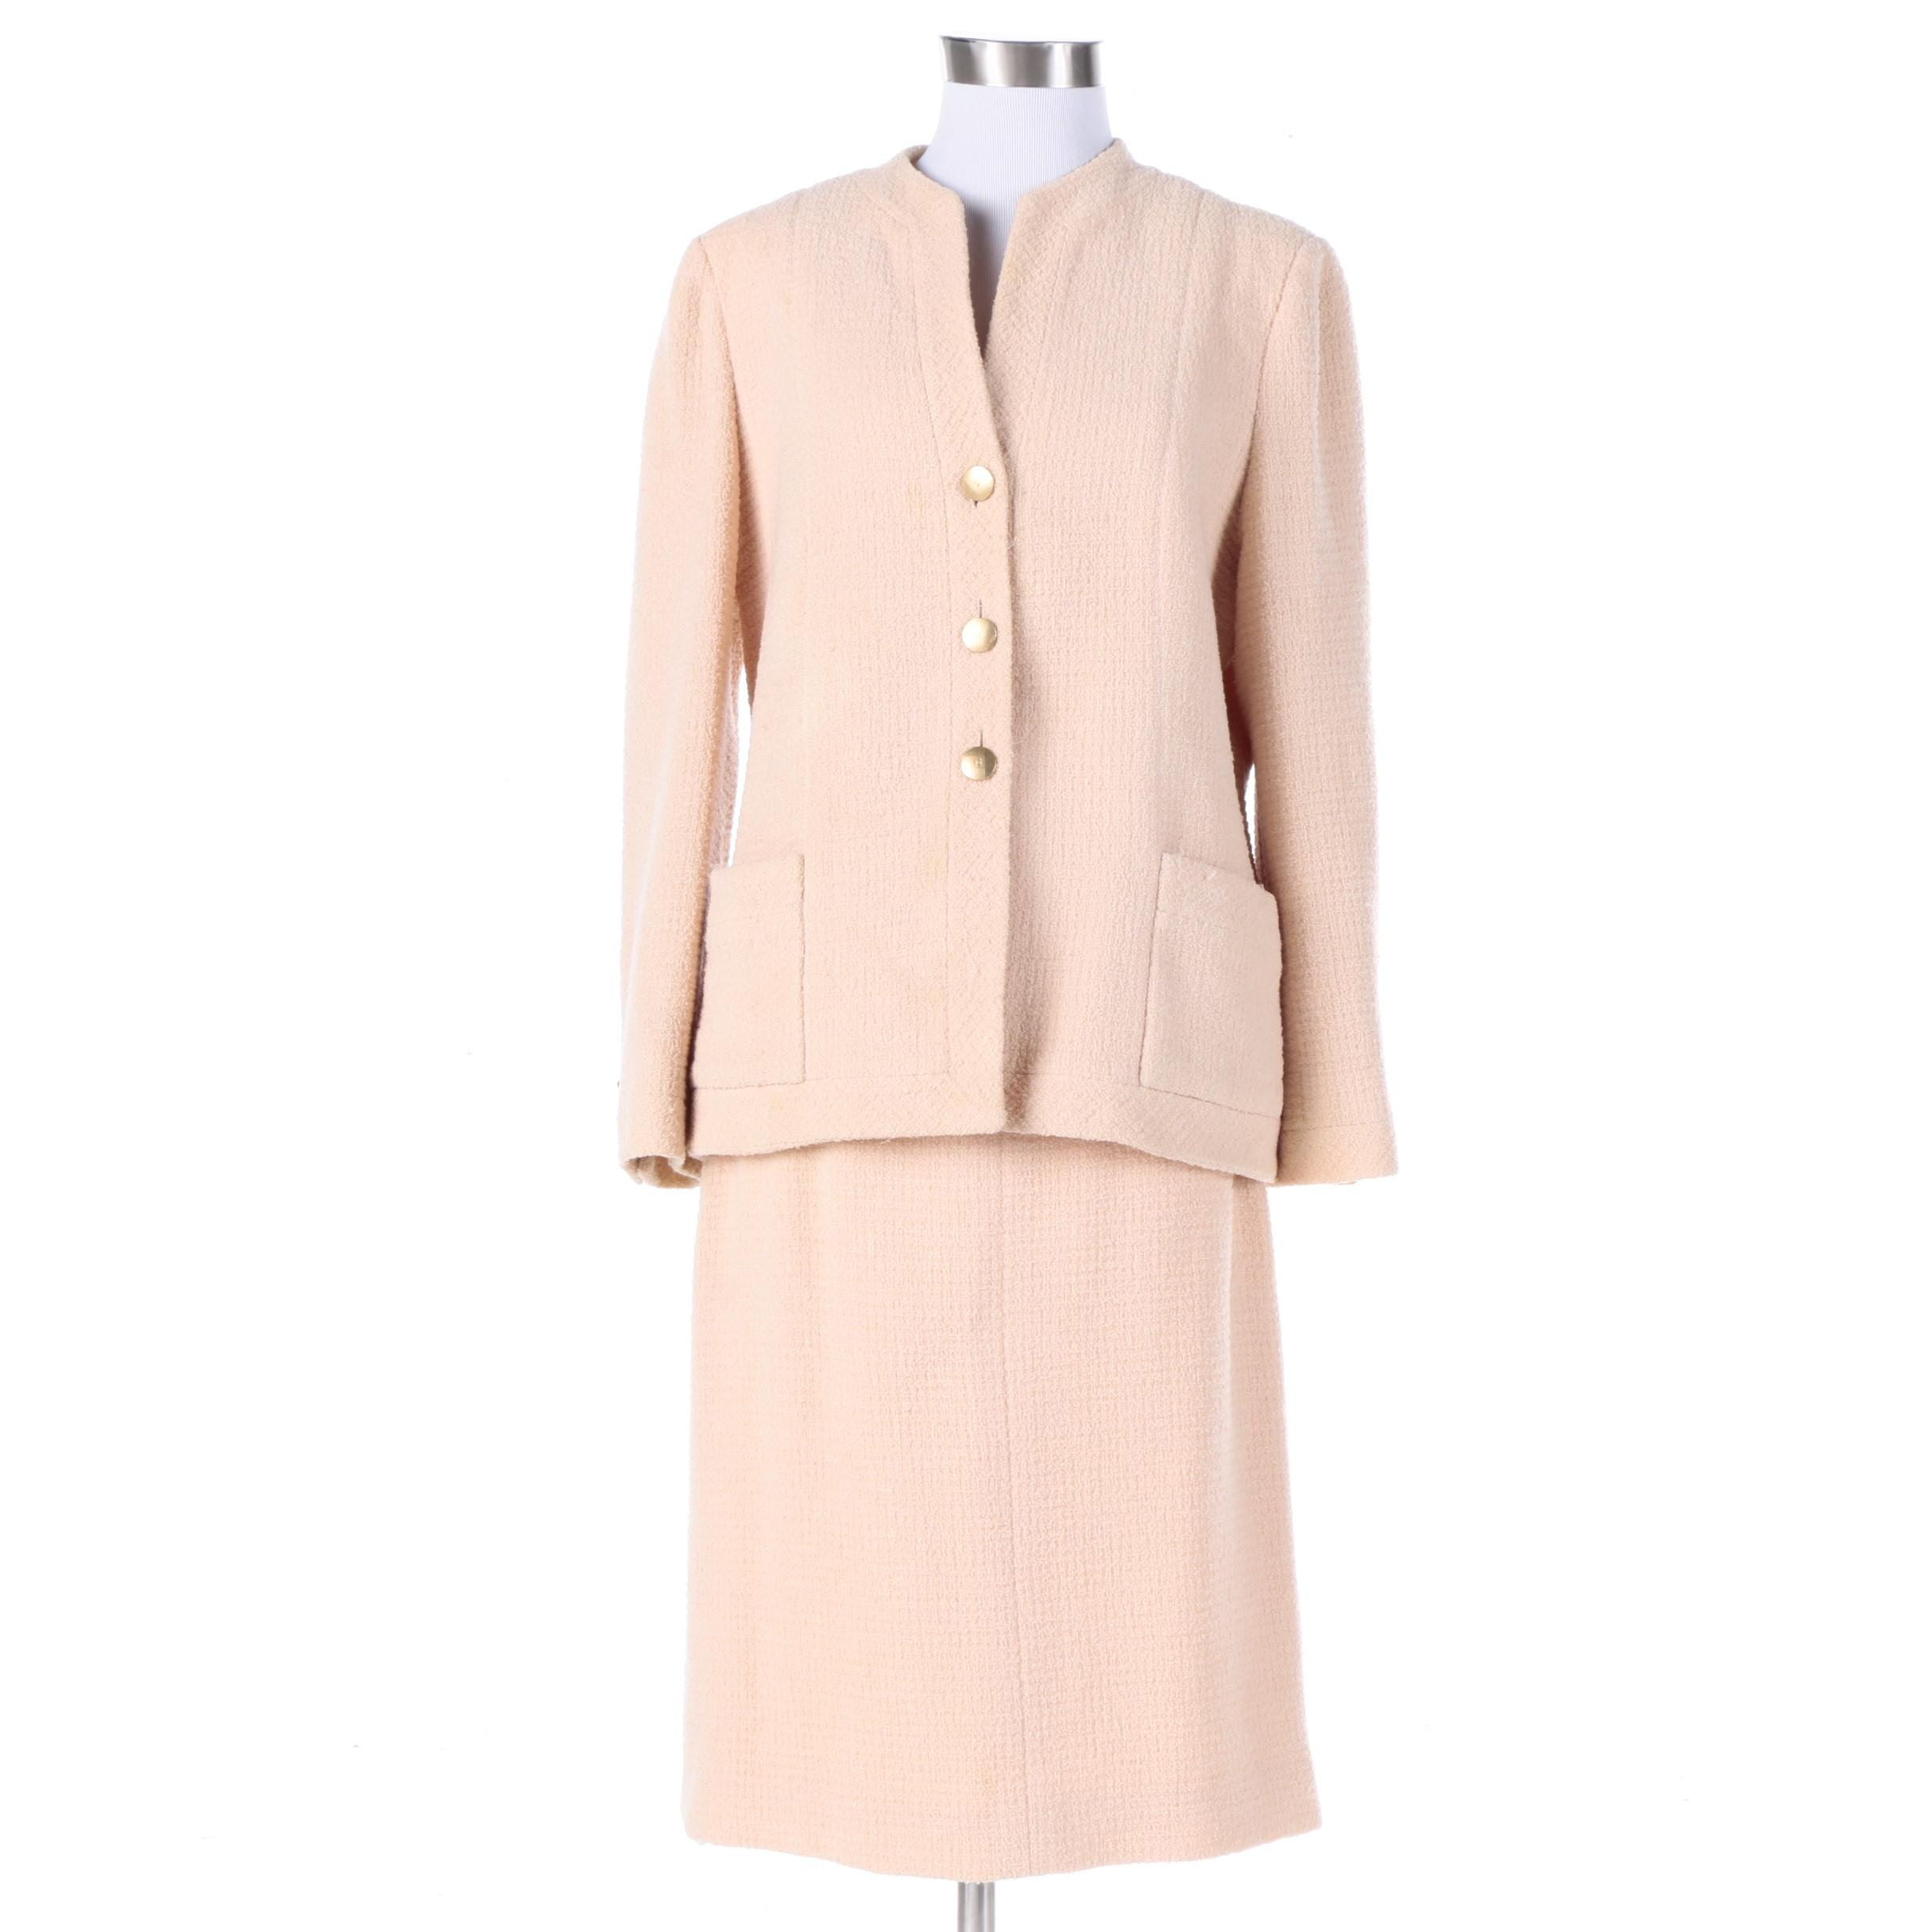 Chanel Boutique Tweed Wool Blend Skirt Suit